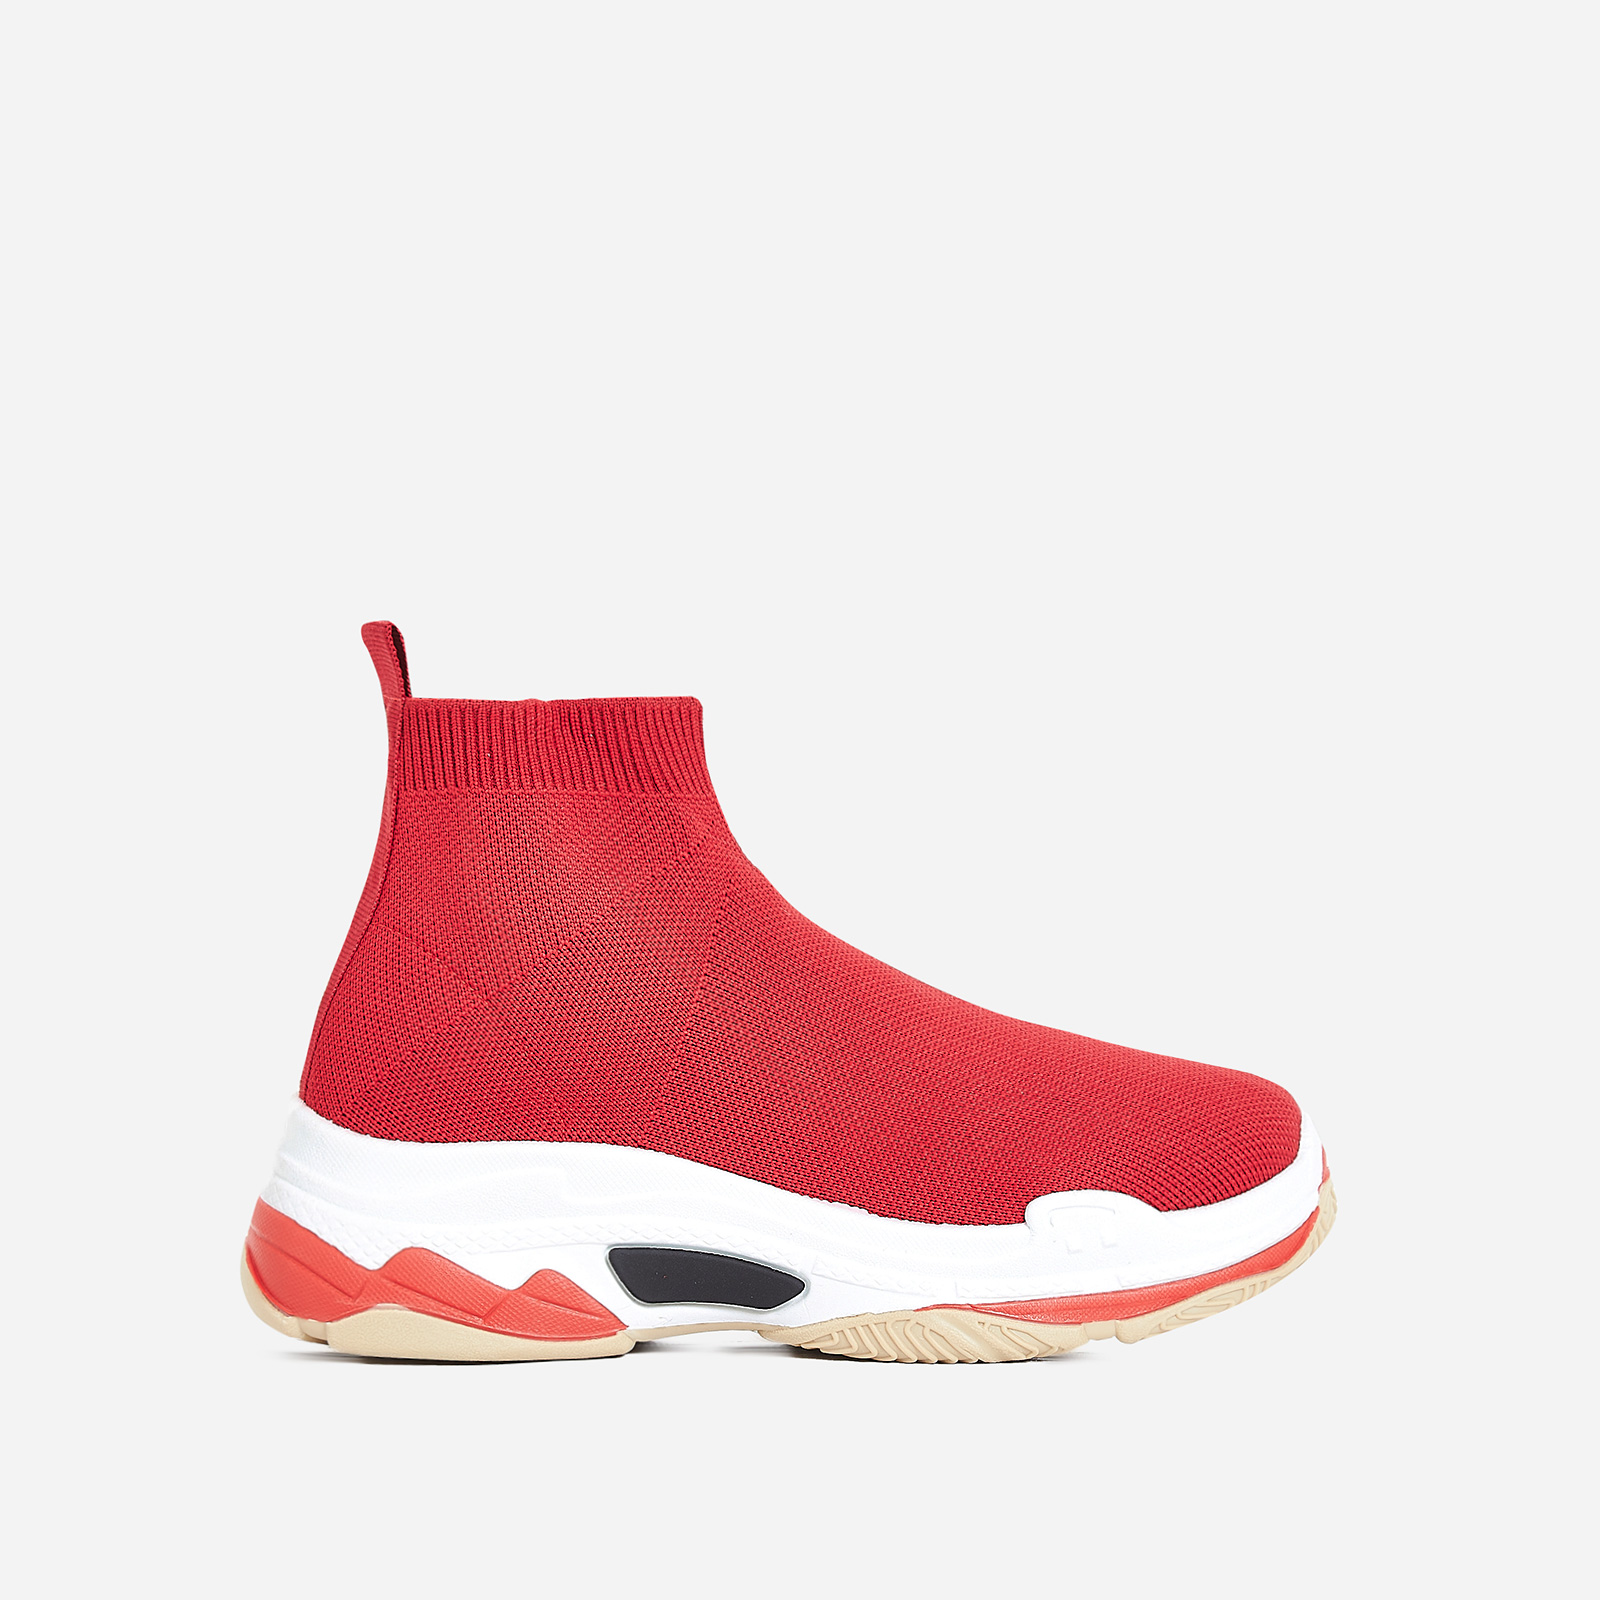 Tidal Chunky Sole Train In Red Knit